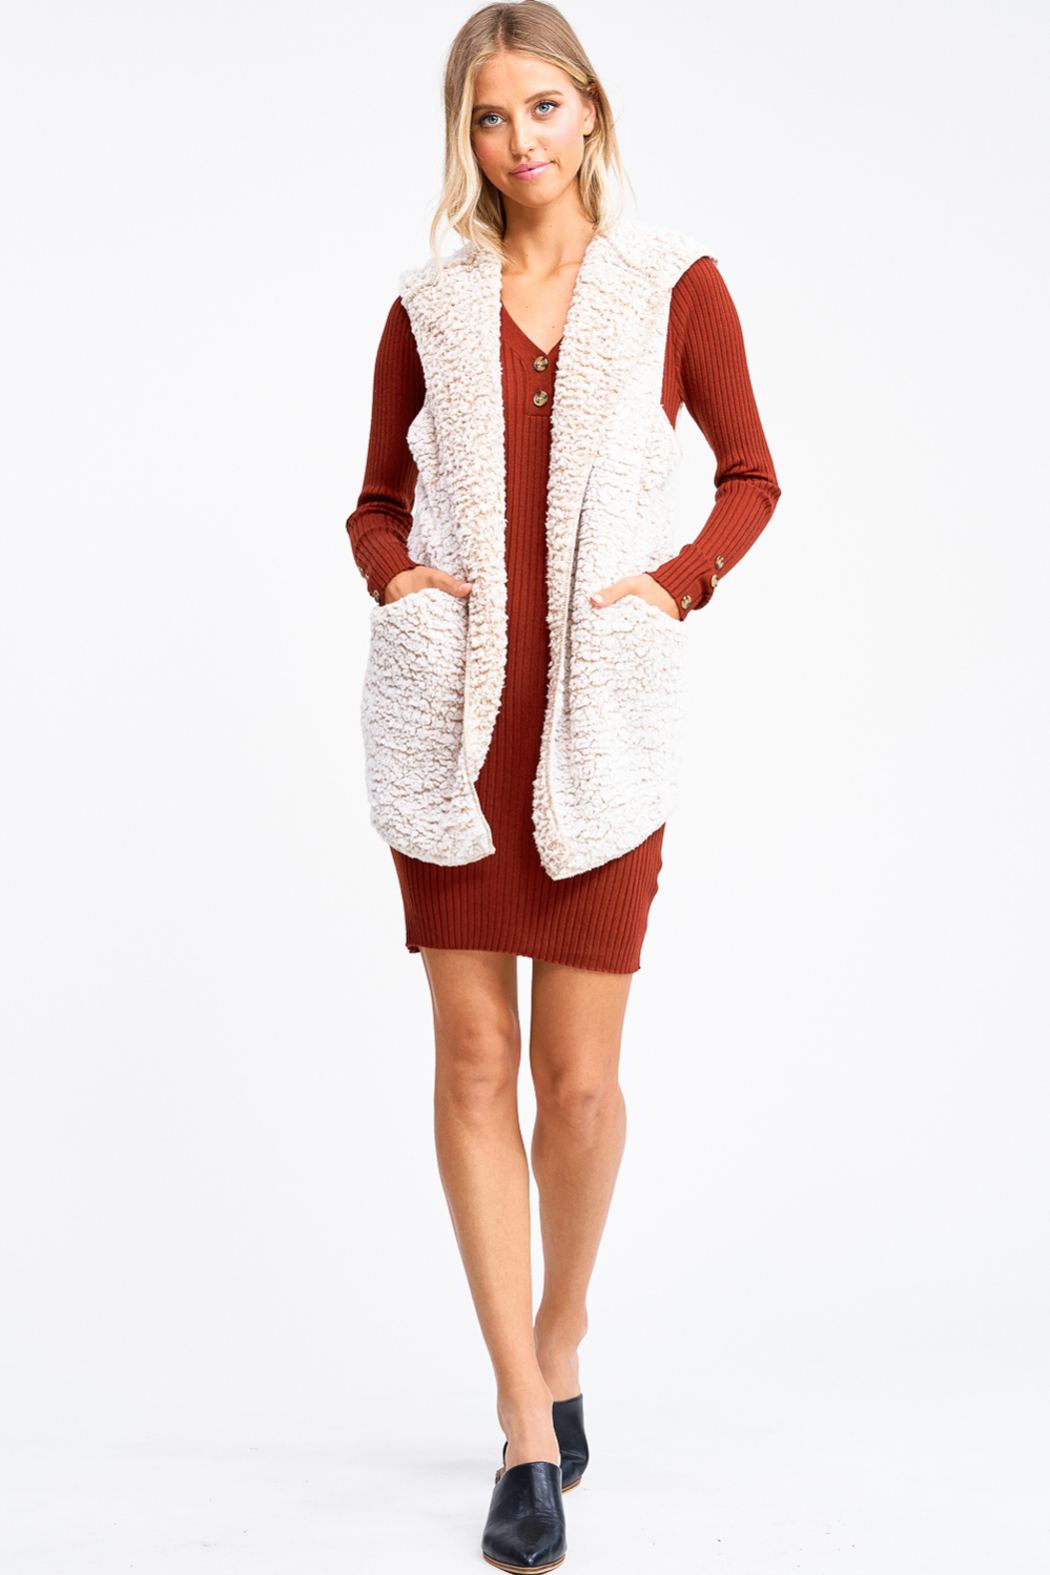 MONTREZ Taupe sherpa fleece cardigan vest - Side Cropped Image